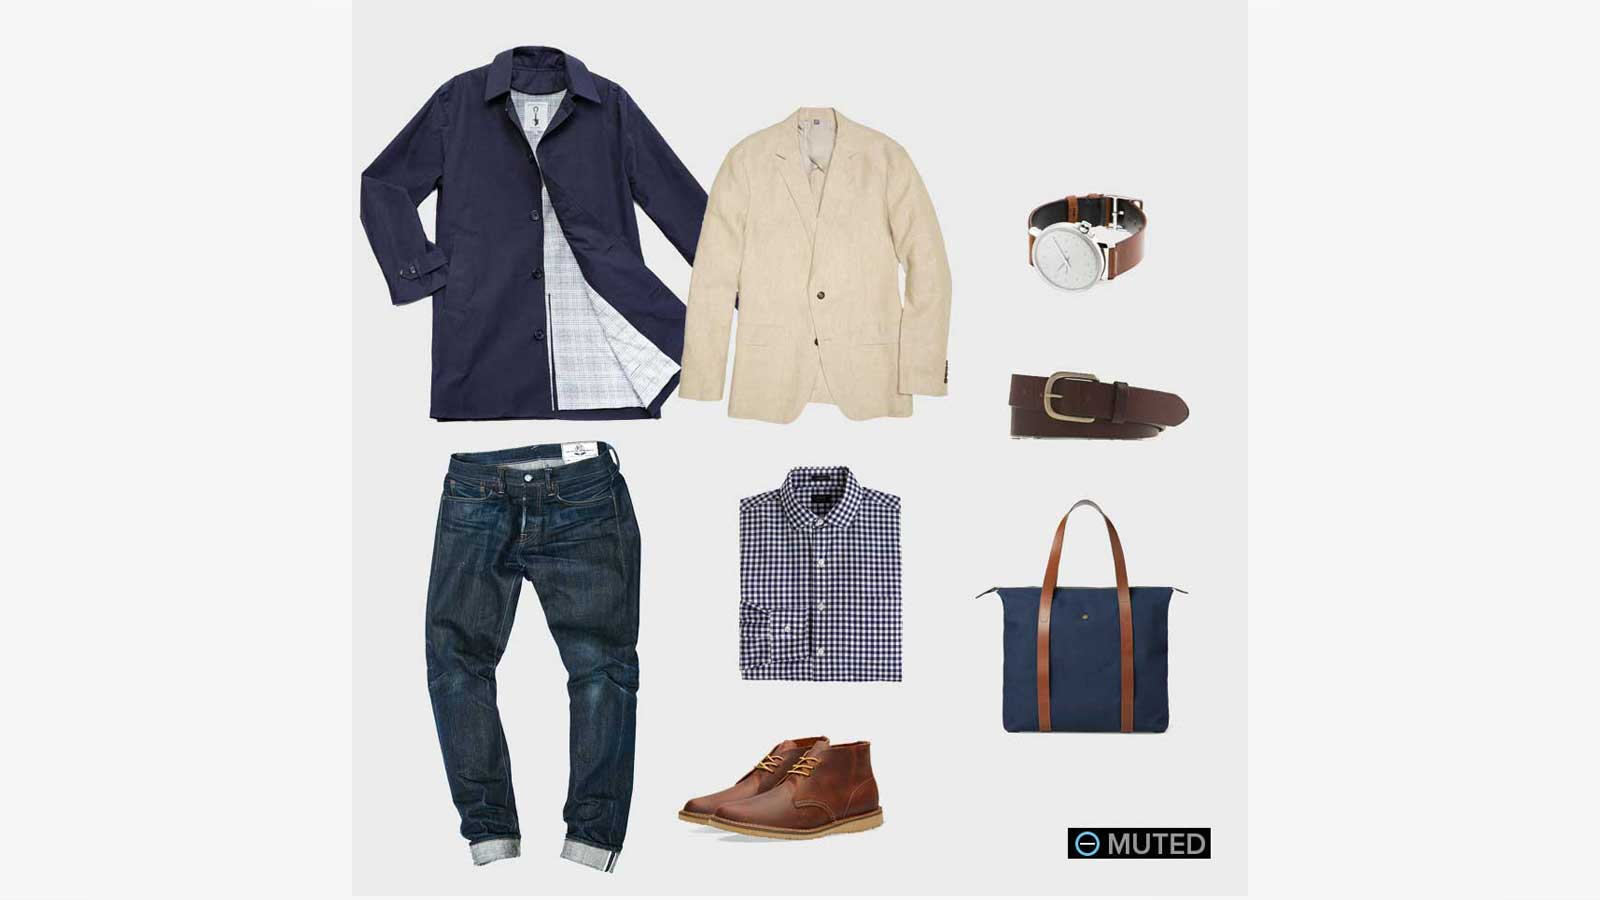 MENS OUTFIT IDEAS #54